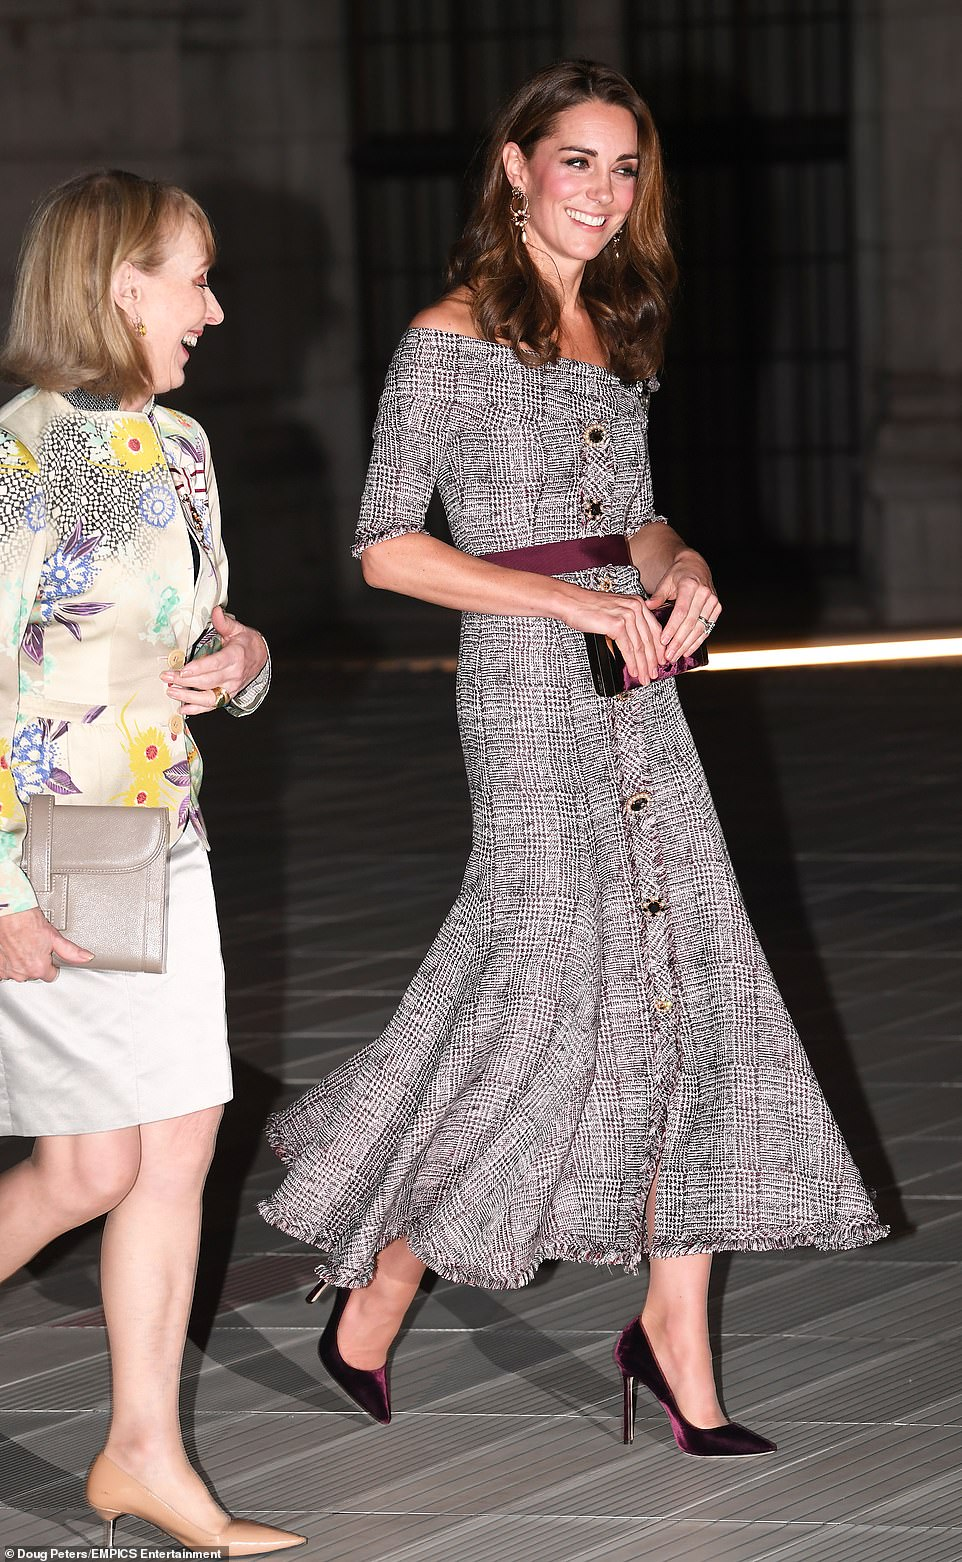 The Duchess of Cambridge opens the new Photography Centre